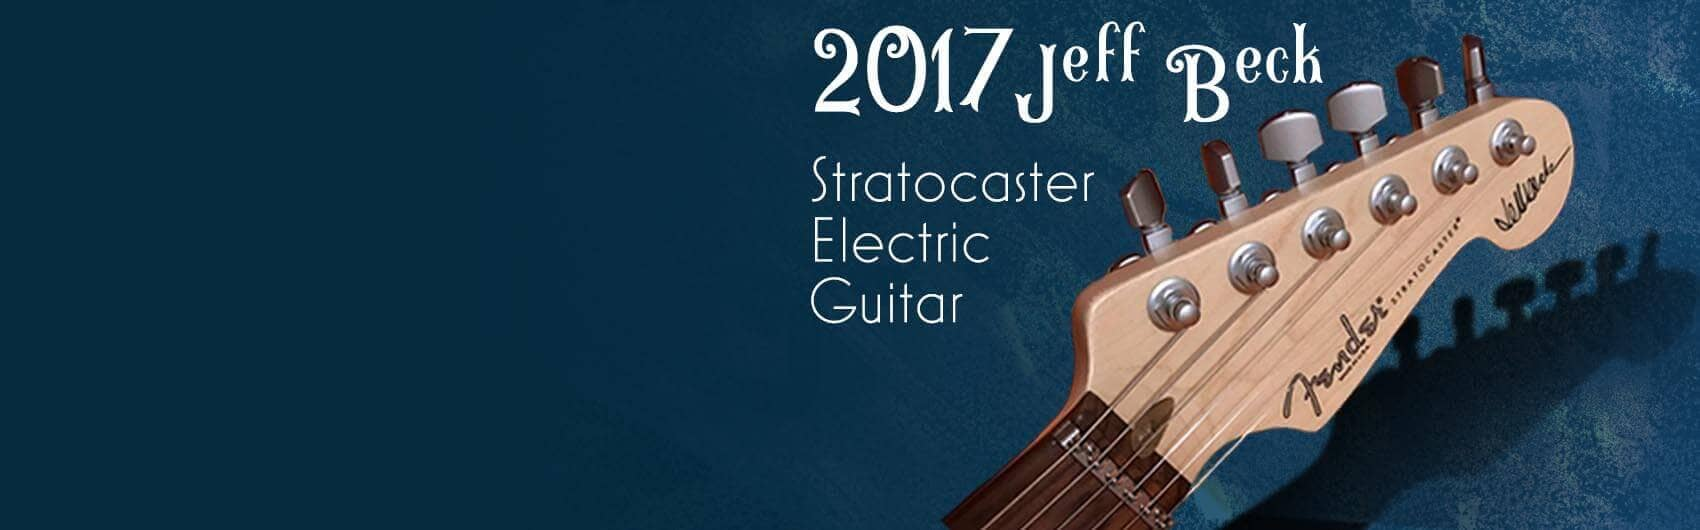 2017 Jeff Beck Stratocaster Electric Guitar Raffle